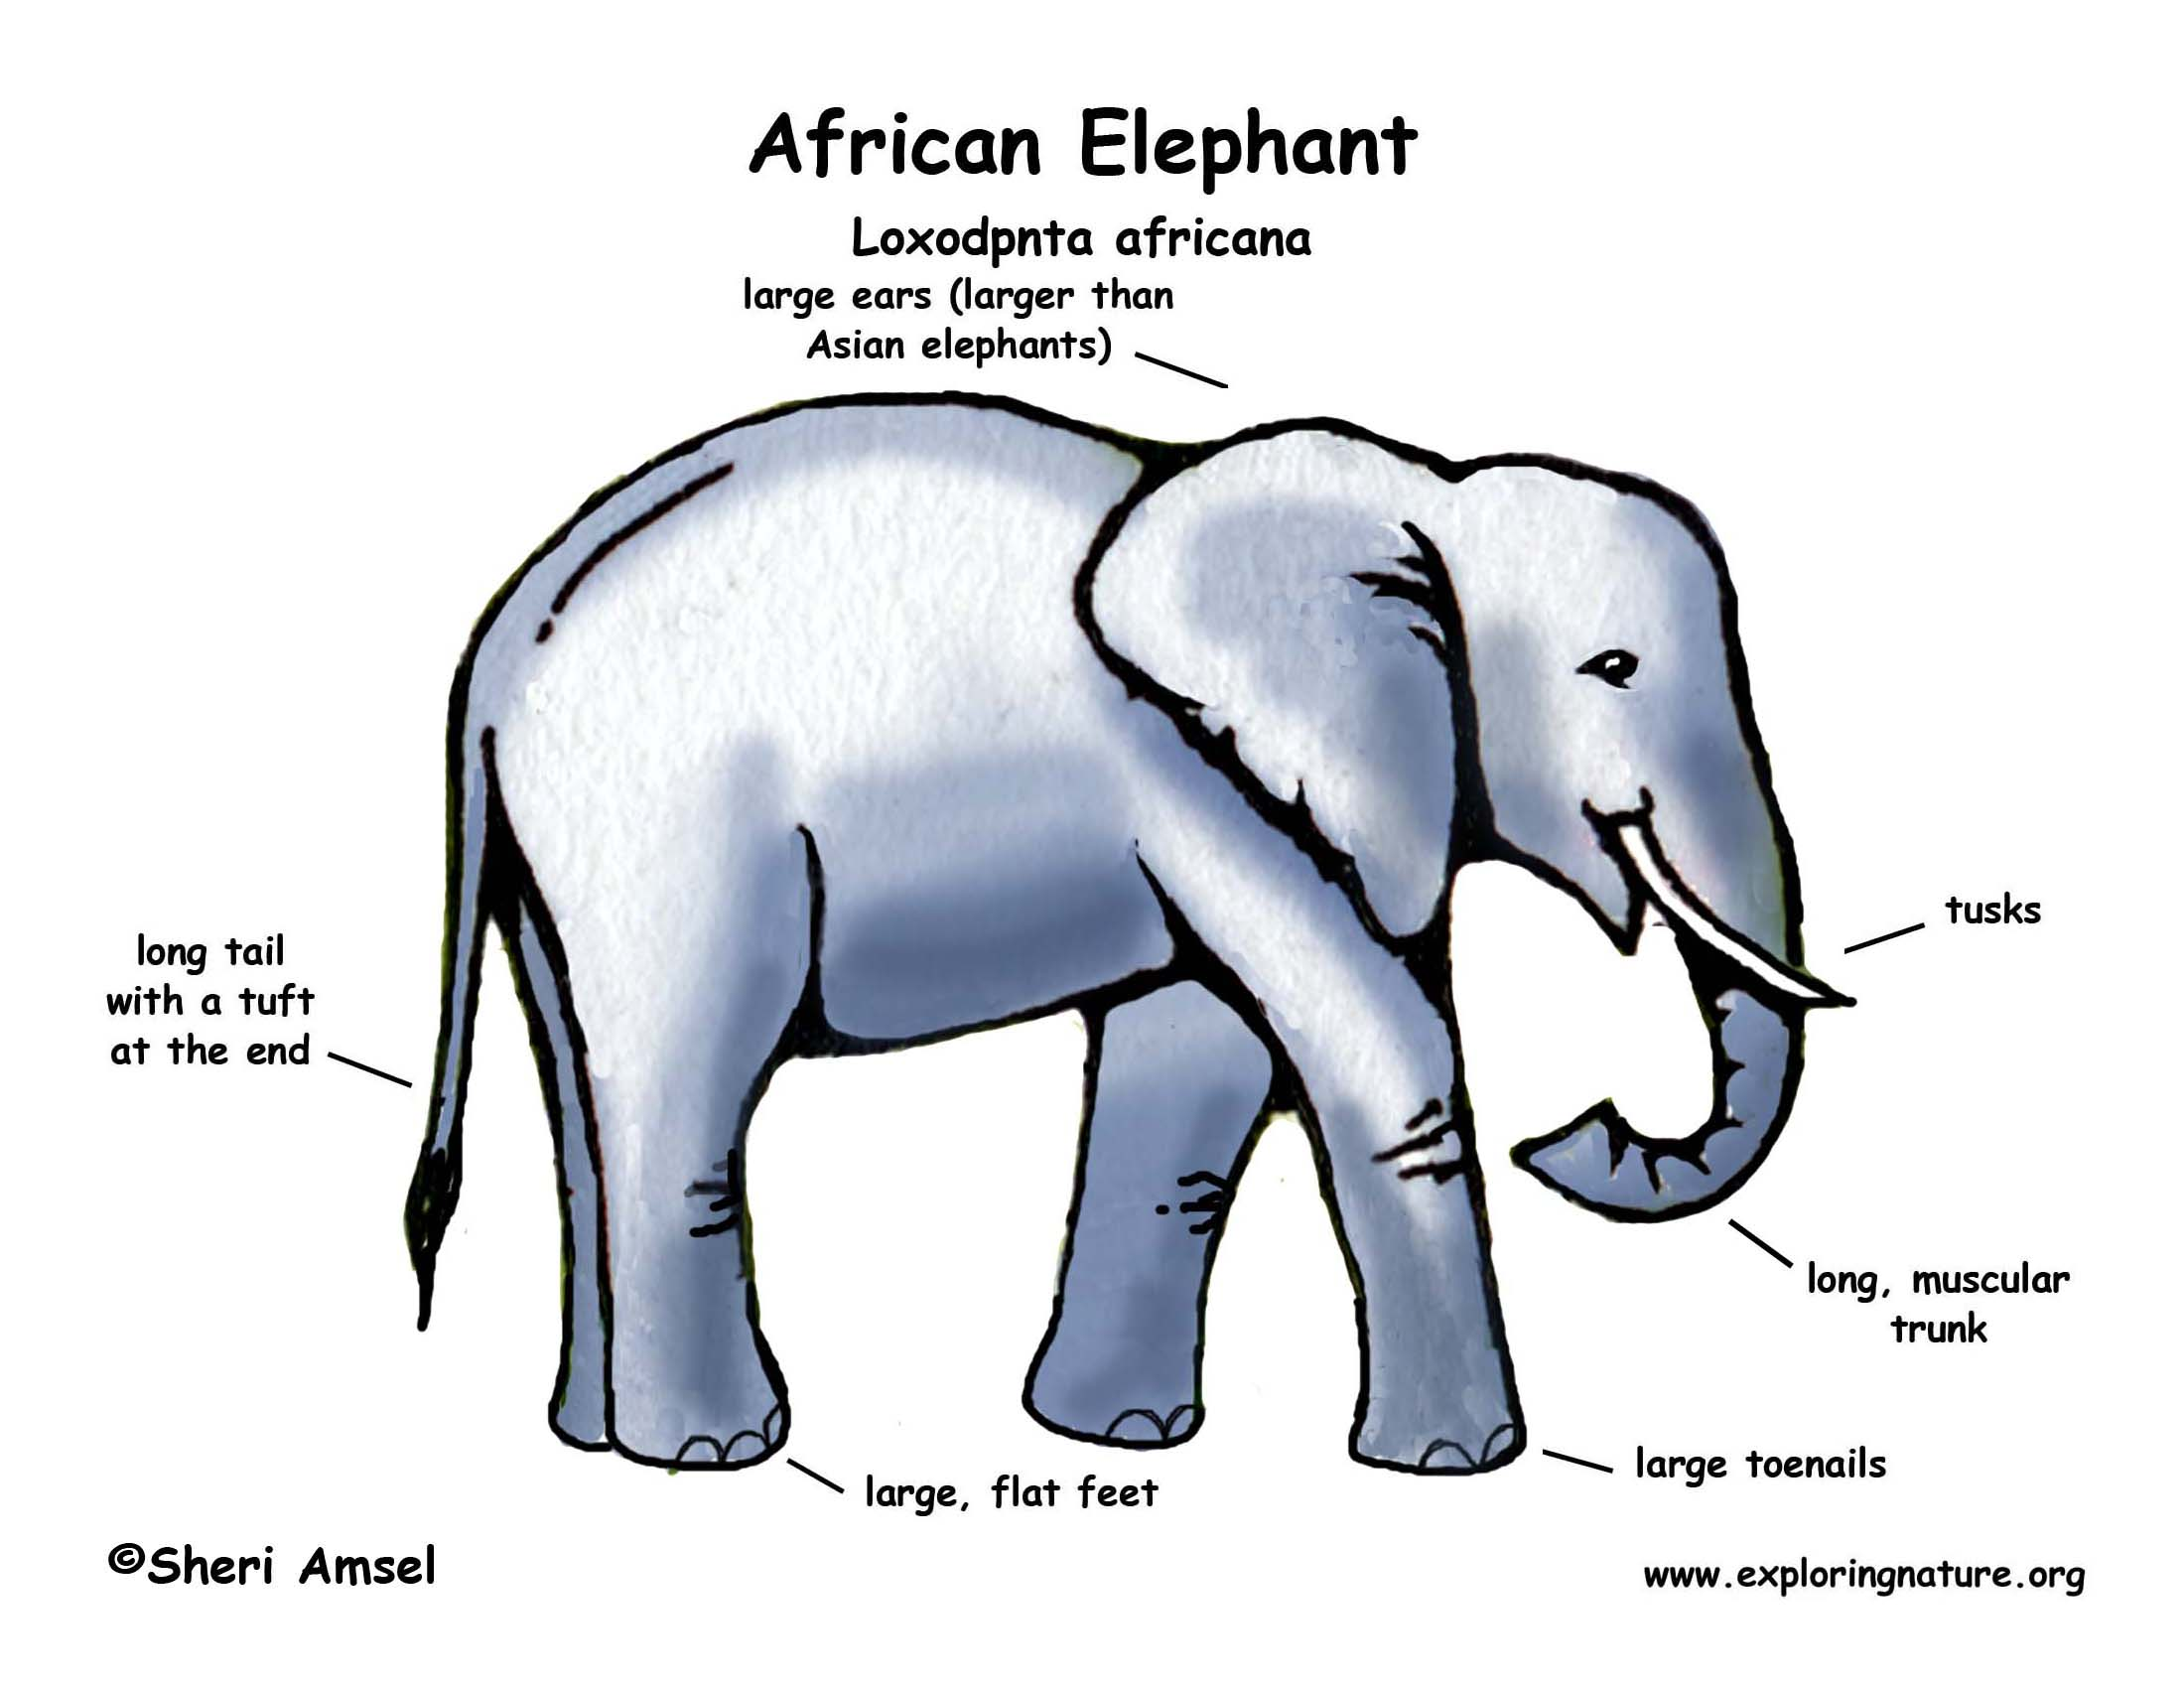 Elephant Skeleton Diagram http://exploringnature.org/graphics/color_diagram_new/